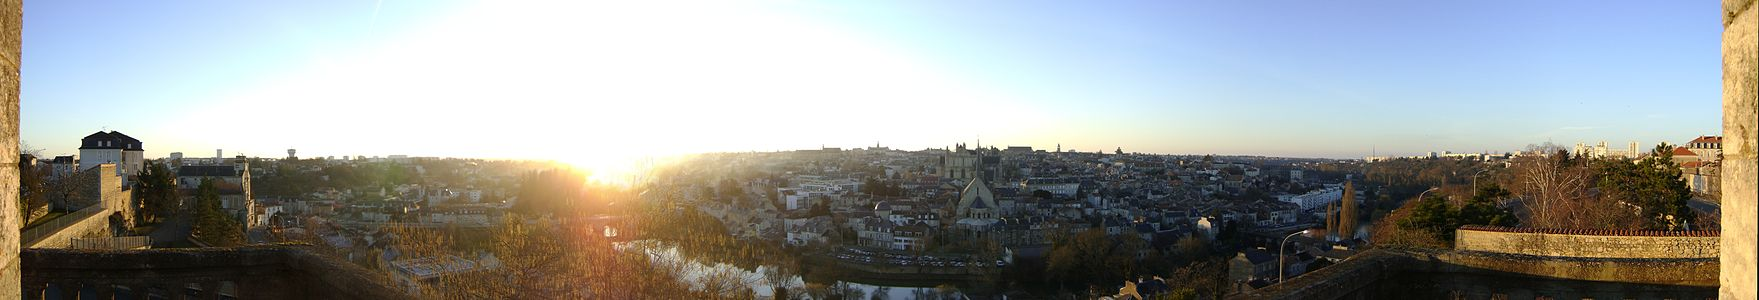 Panoramic view of Poitiers at sunset Poitiers